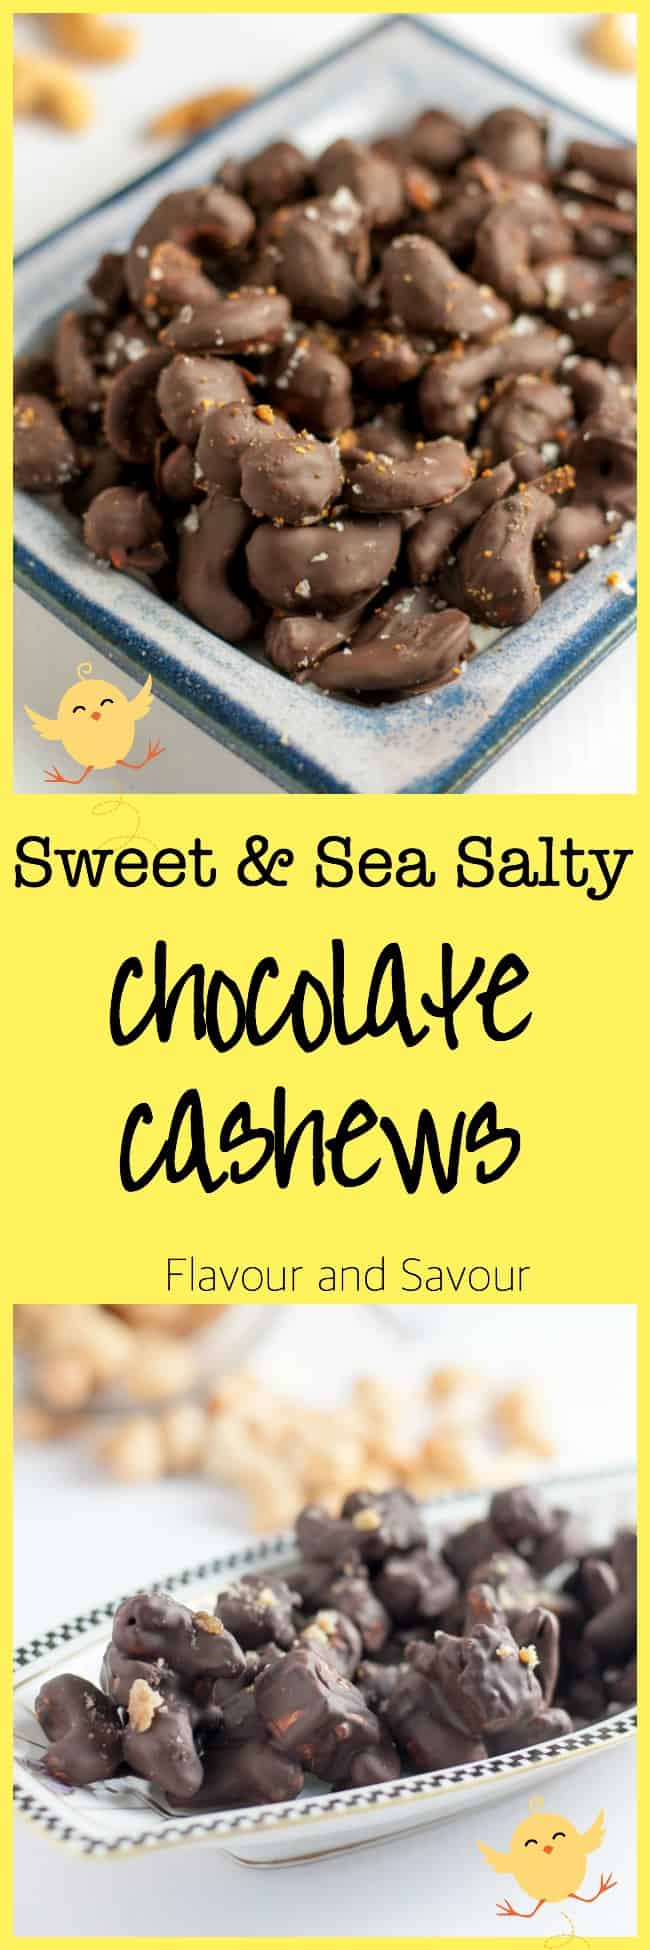 Sweet and Sea Salty Chocolate Cashews. Make your own holiday treats and ditch the store-bought candy. Easy recipe with simple ingredients.